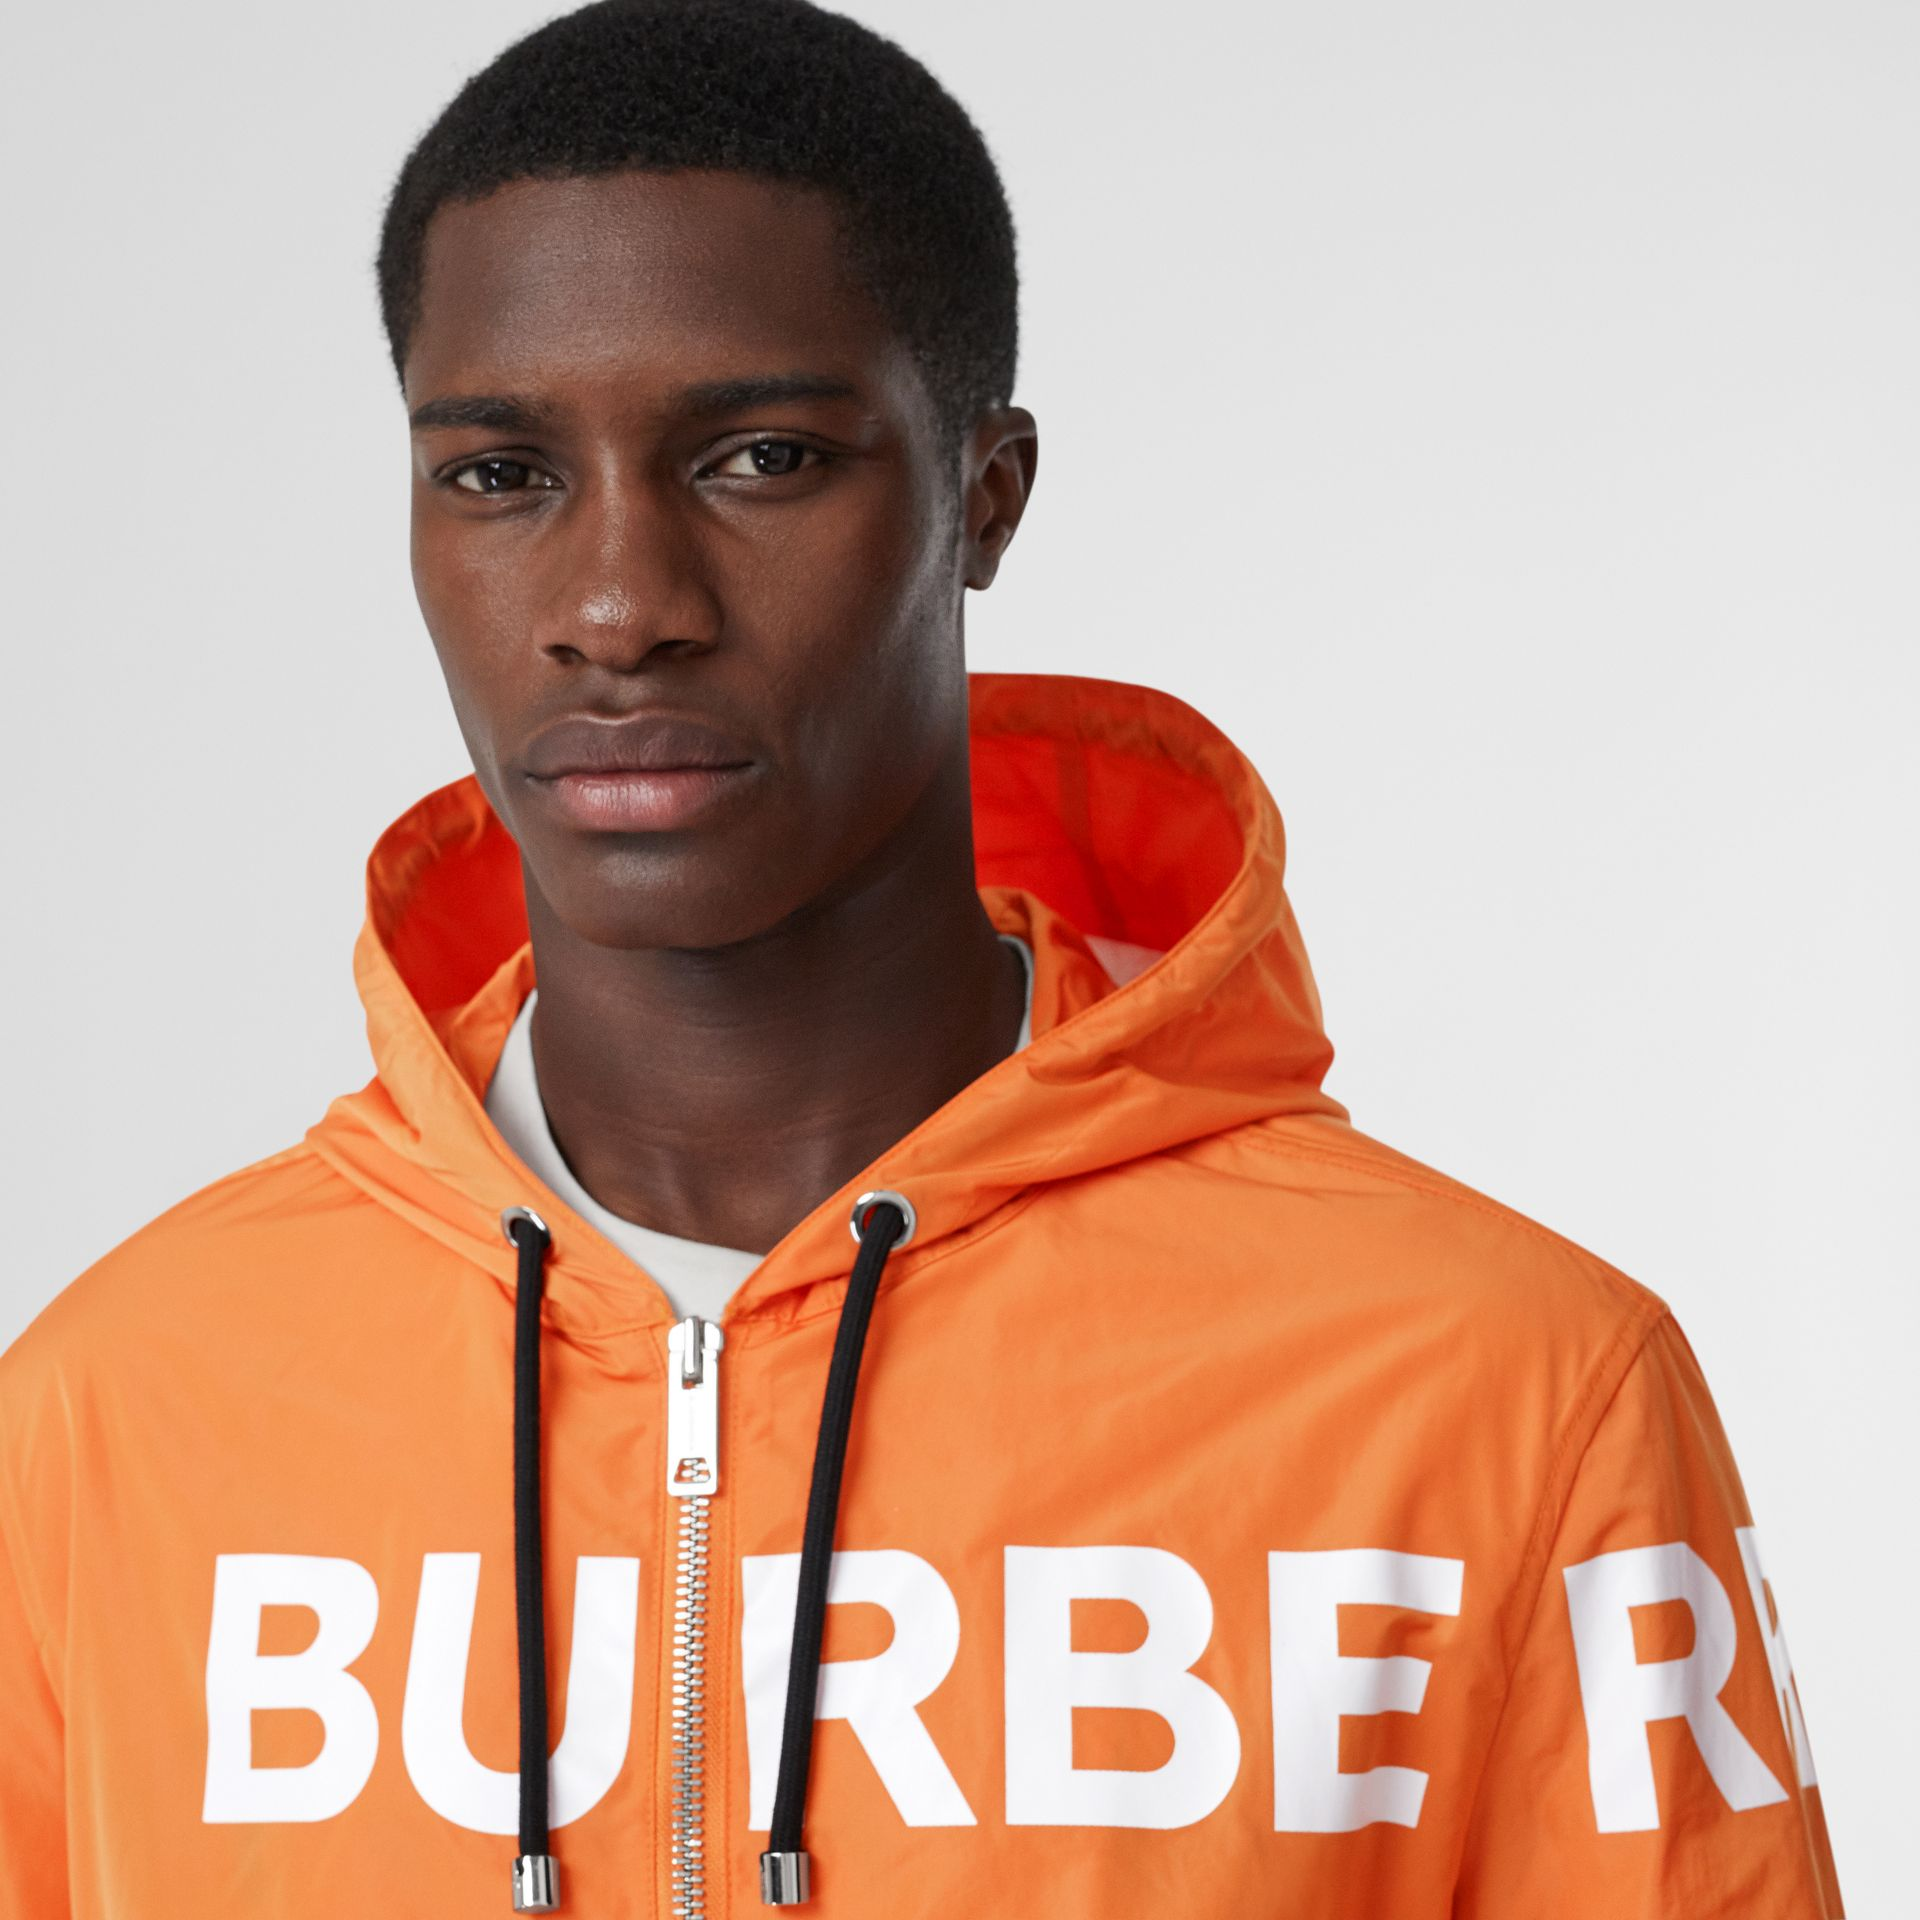 Veste à capuche en nylon Horseferry (Orange Vif) - Homme | Burberry - photo de la galerie 1